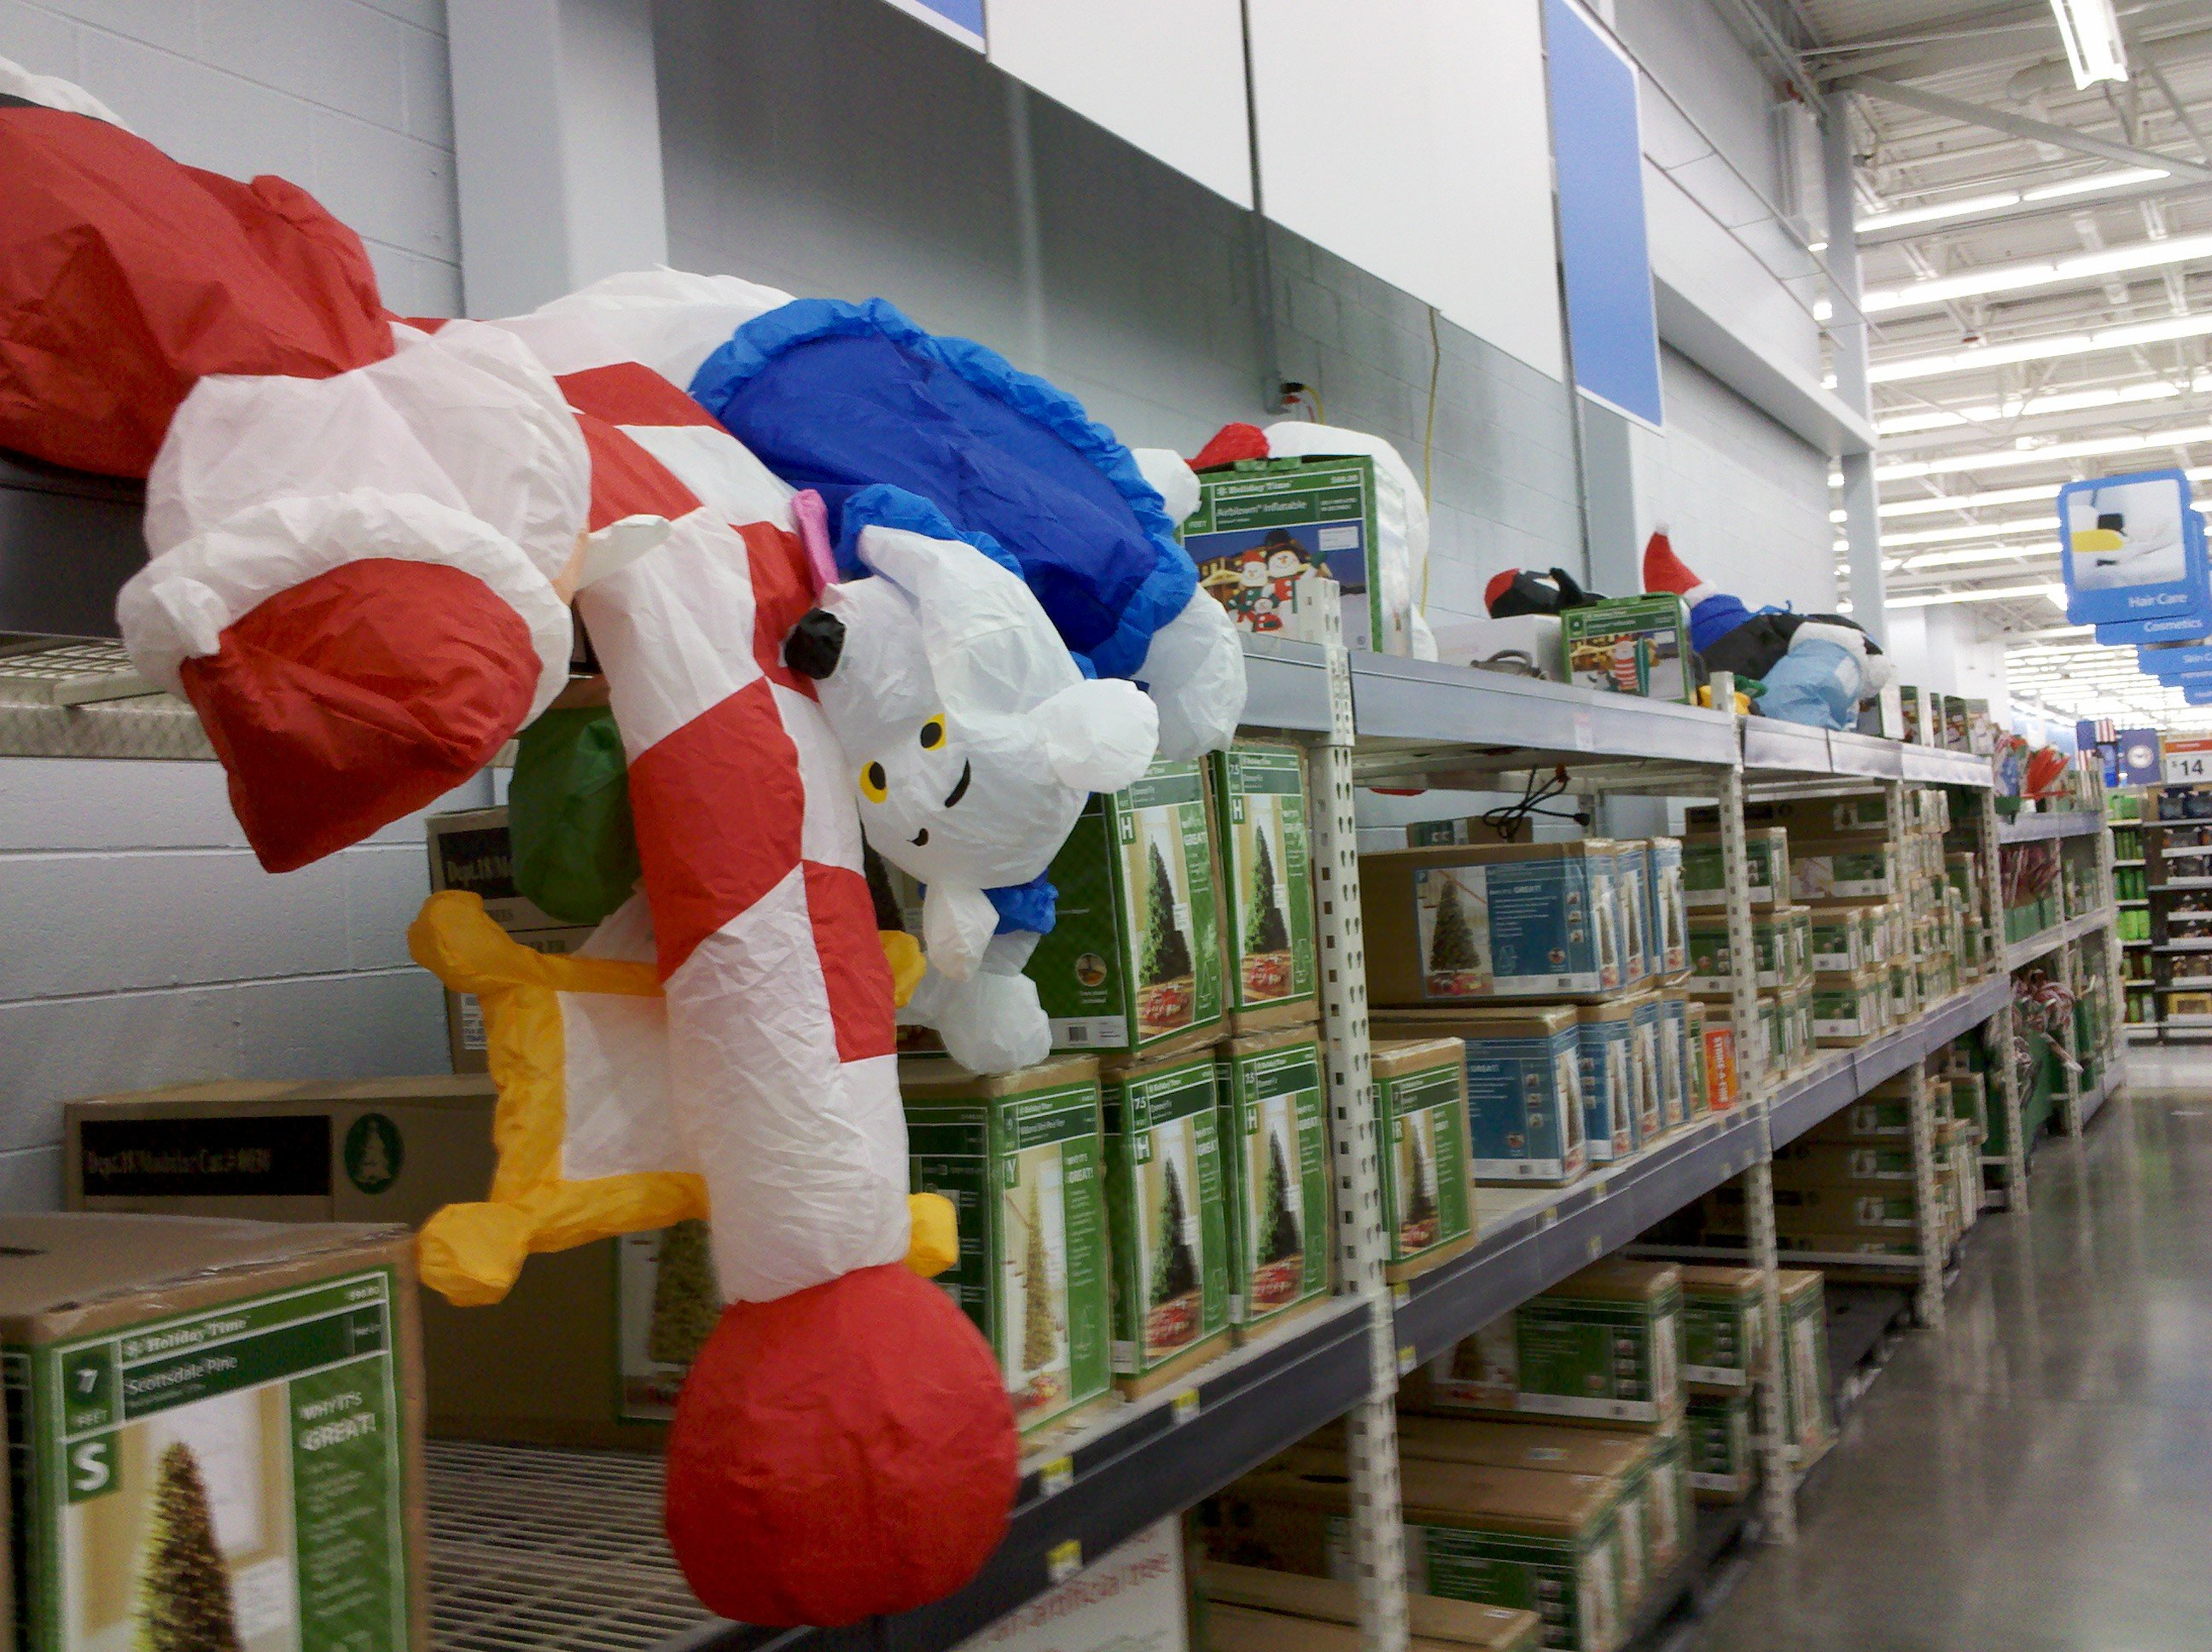 i killed the entire row of inflatables - Christmas Inflatables At Walmart